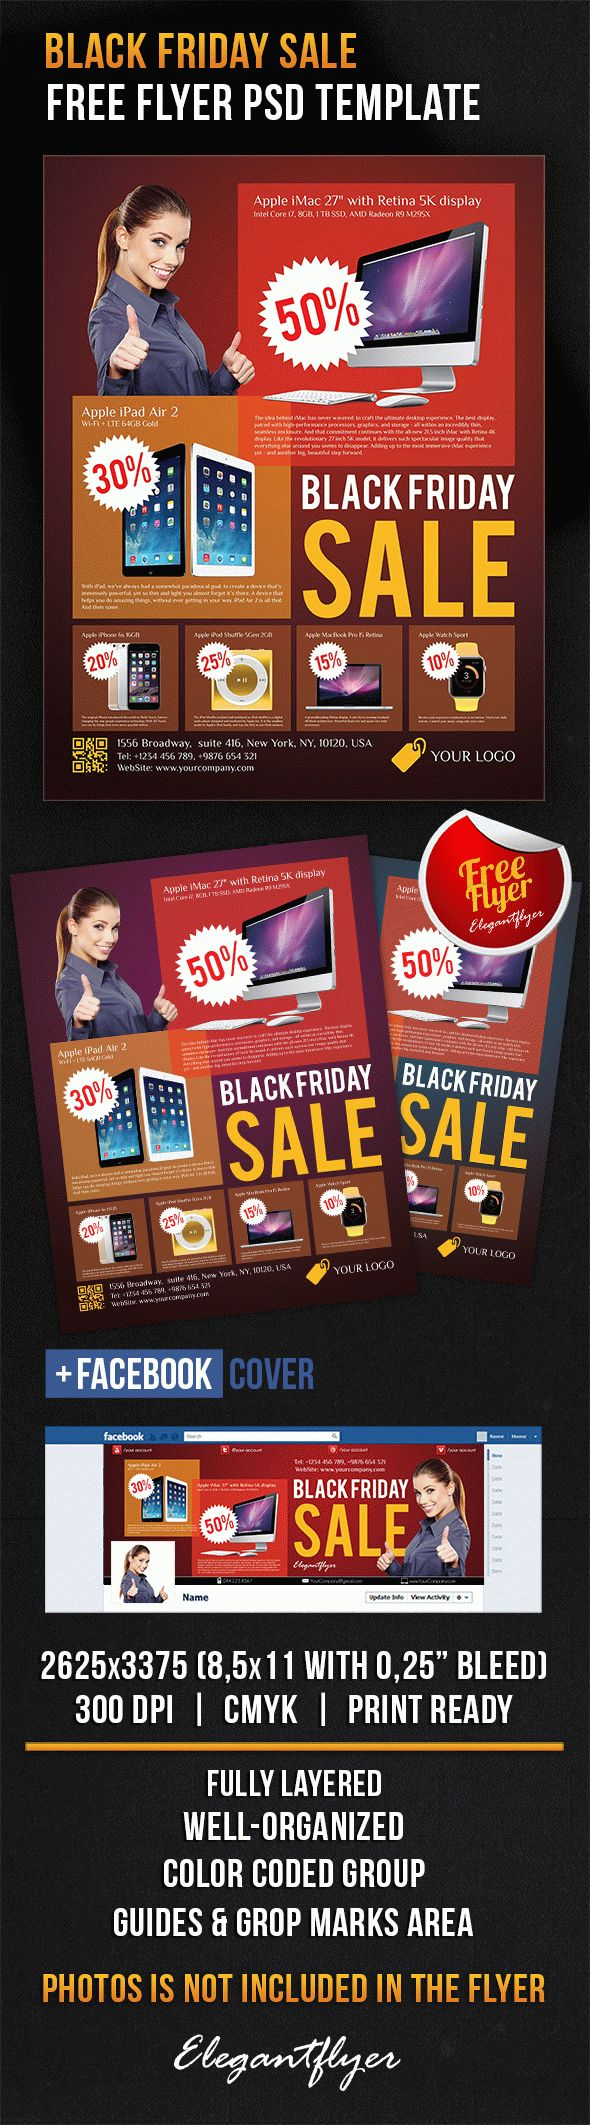 Black Friday Sale – Free Flyer PSD Template + Facebook Cover